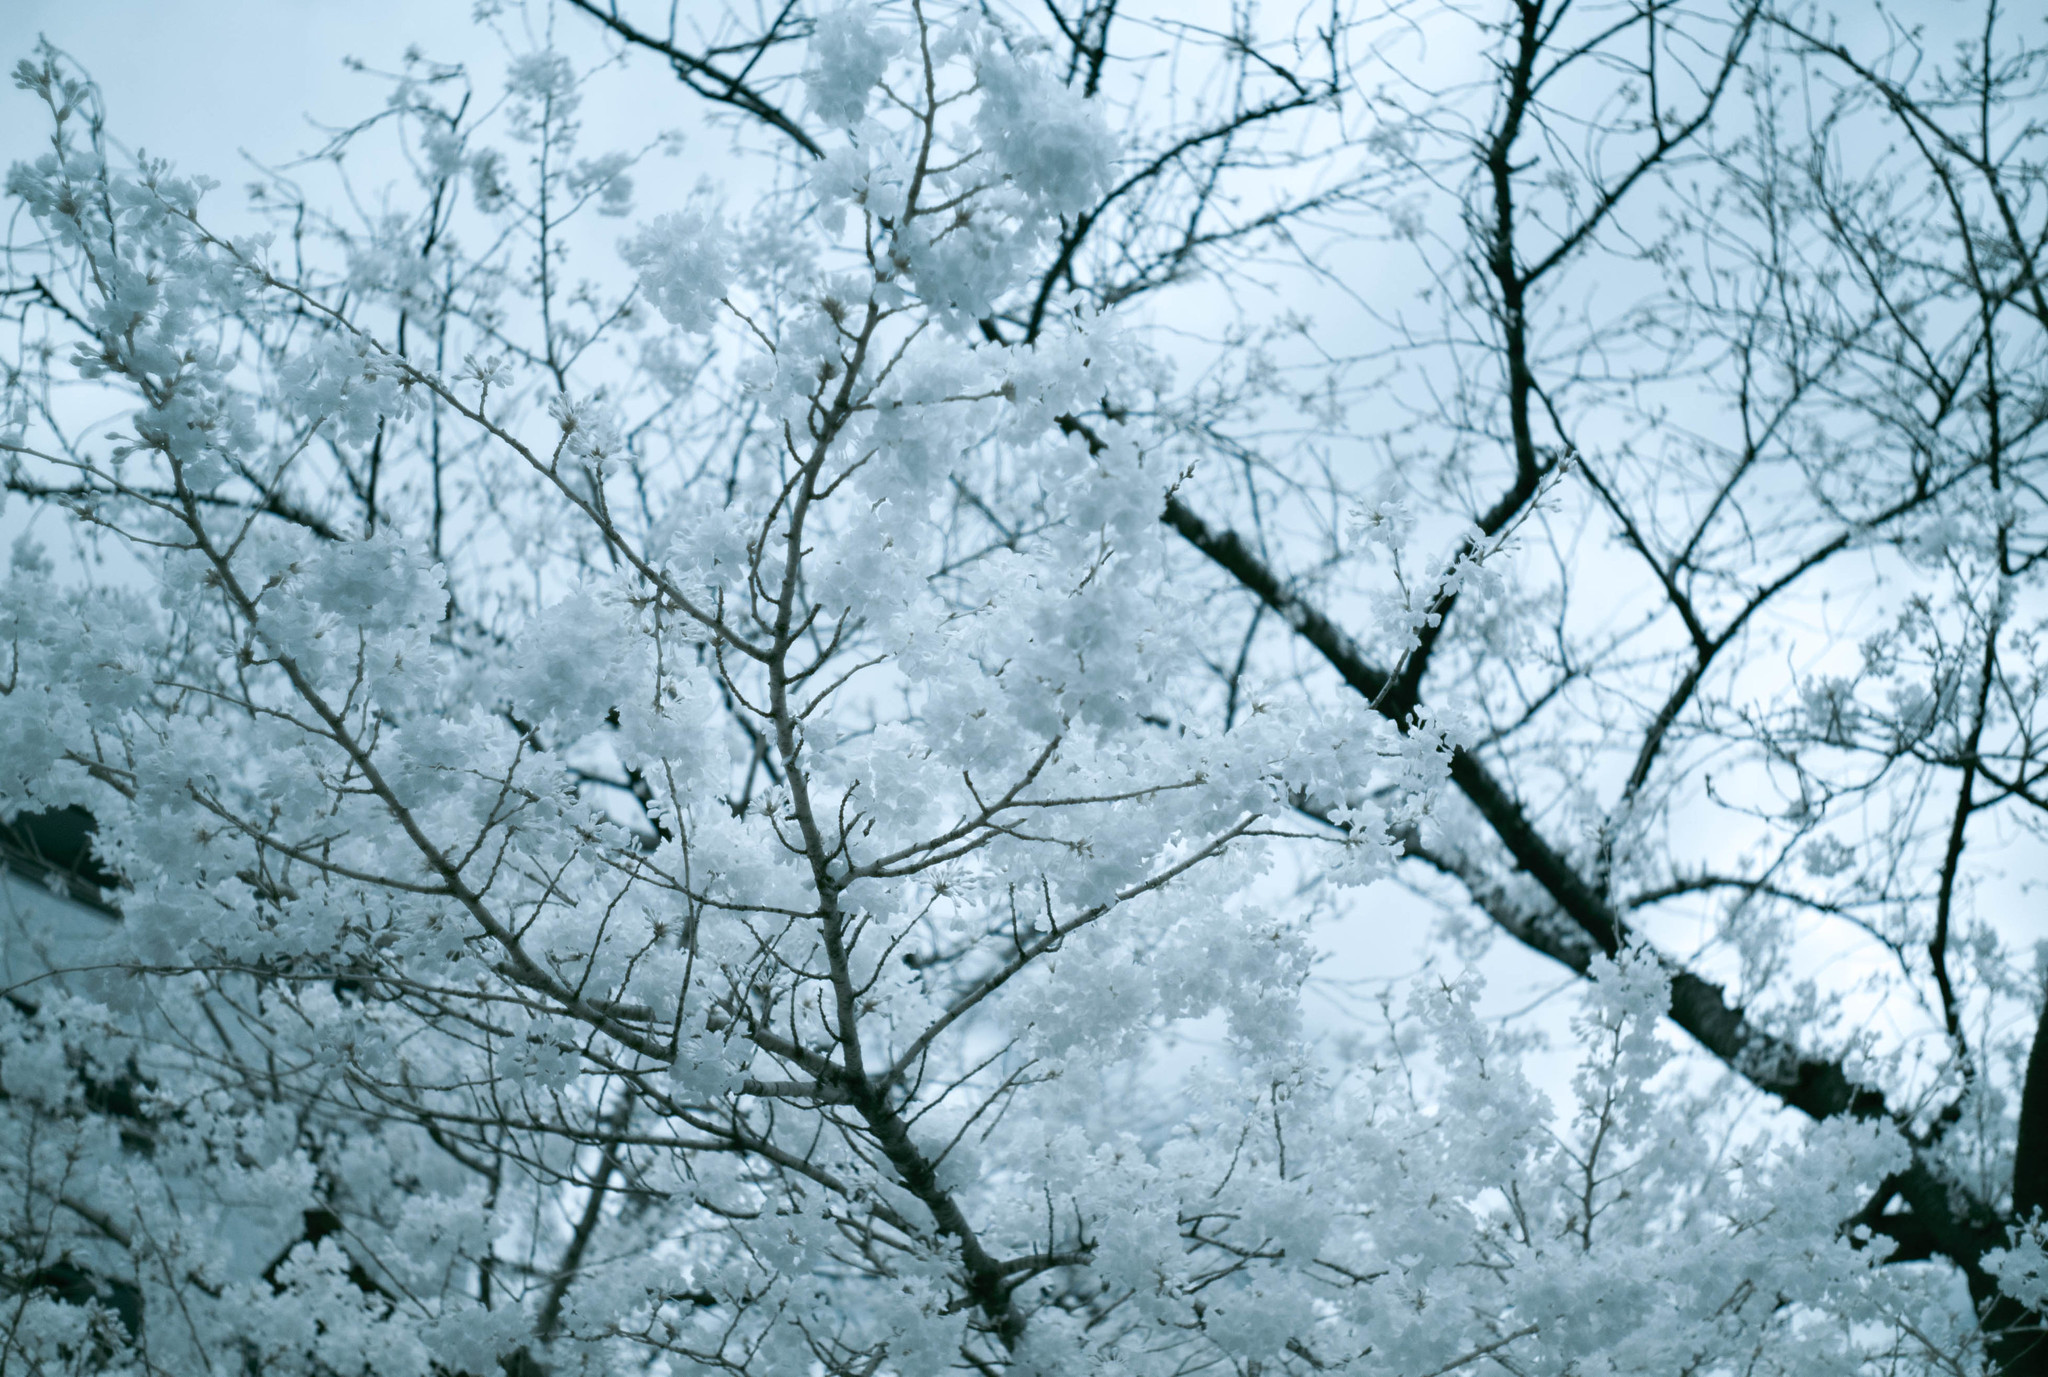 cherry blossom(infrared photography)